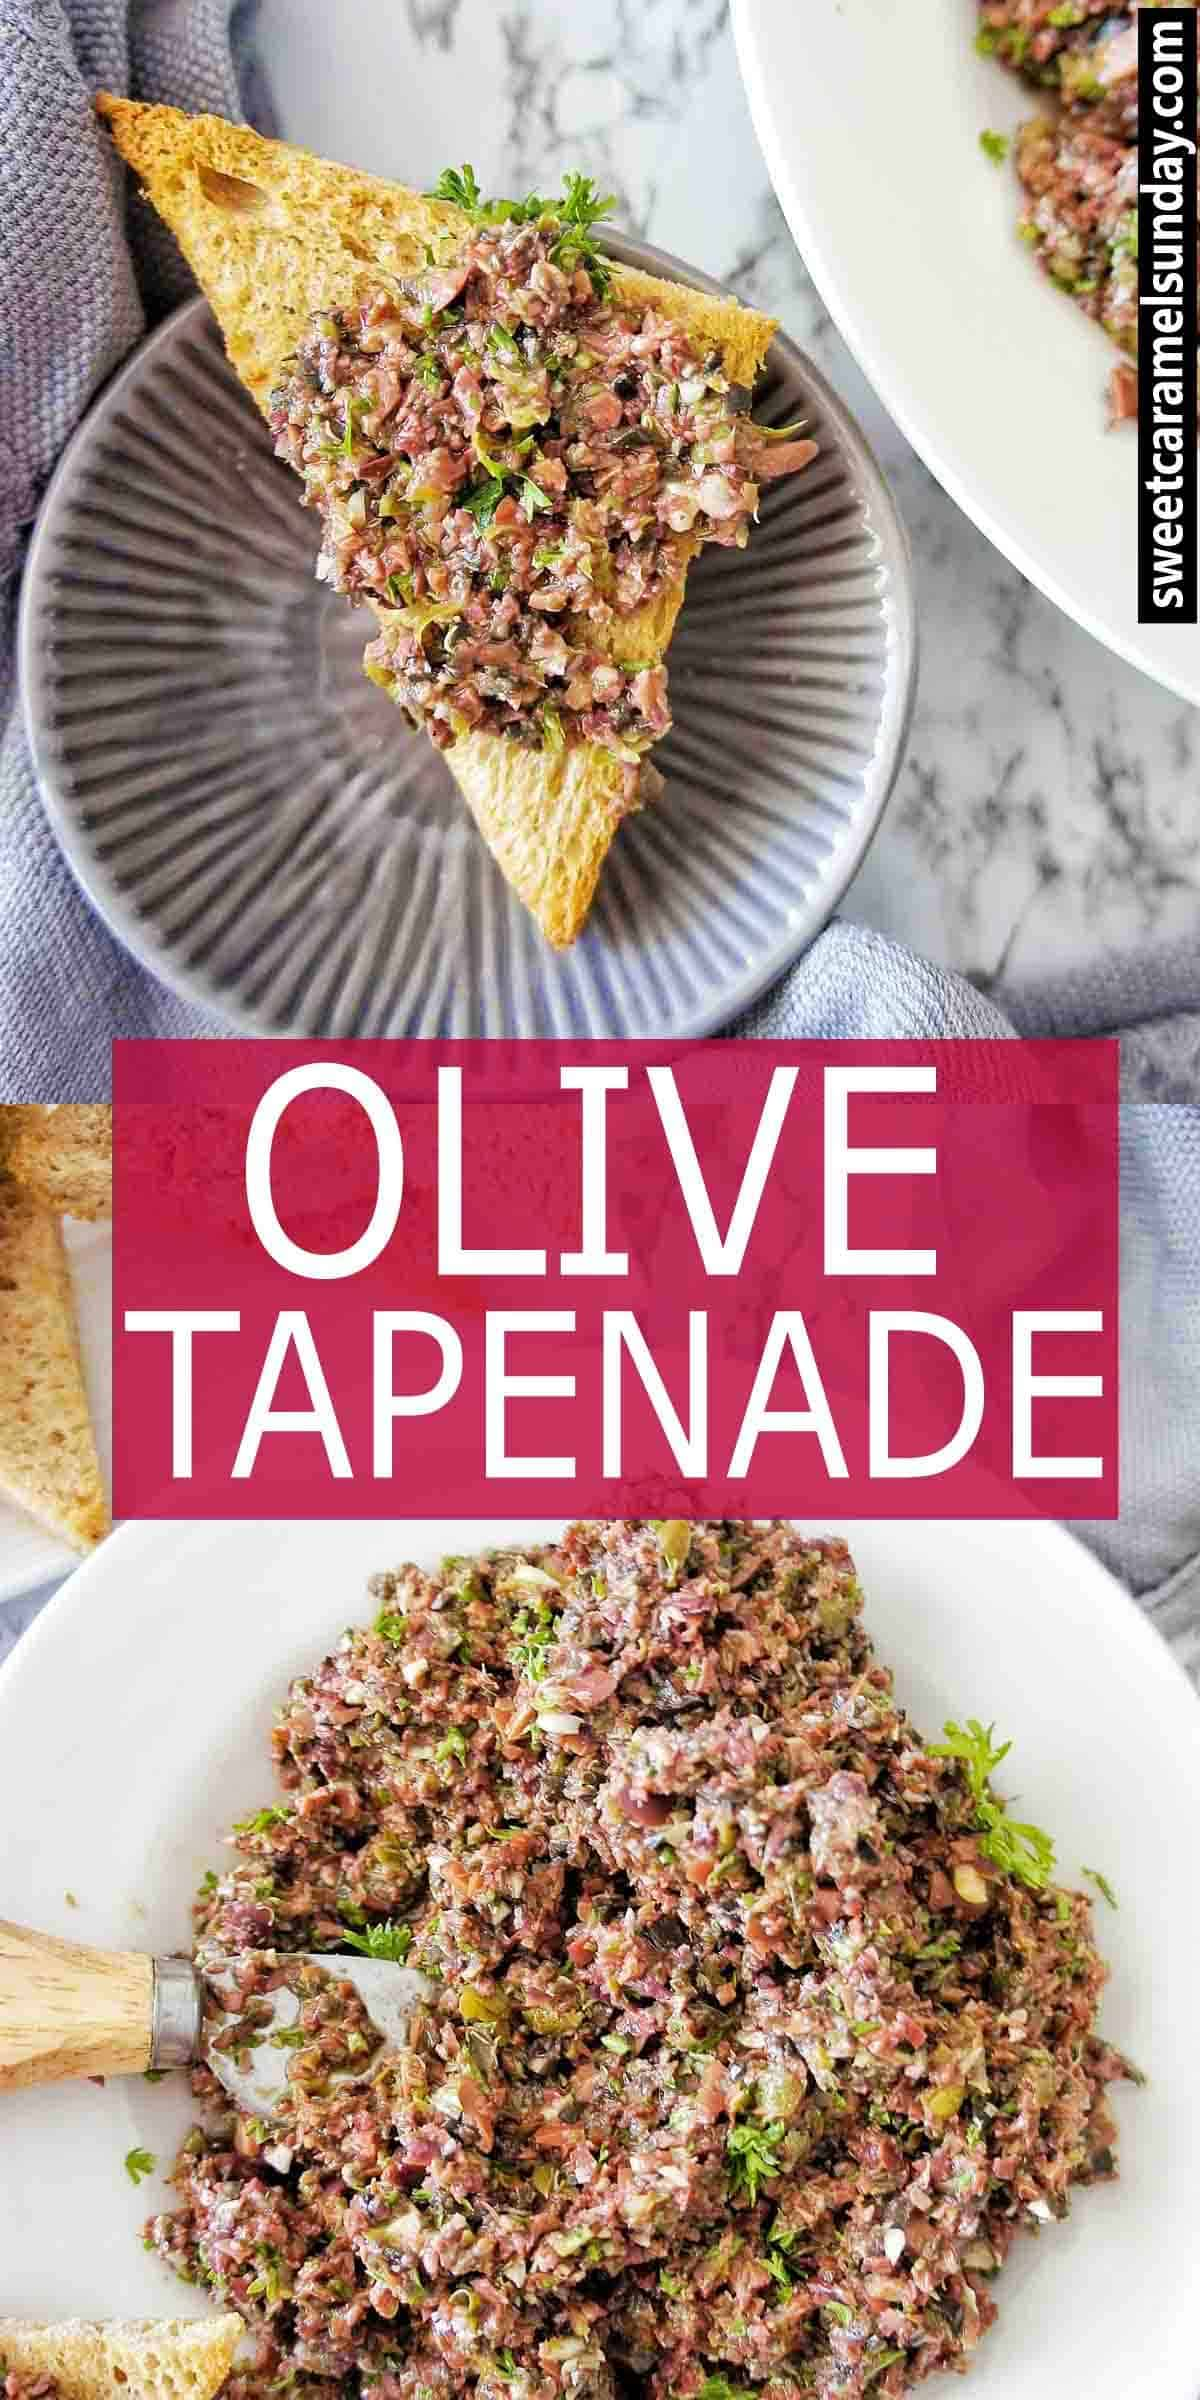 Olive Tapenade with text overlay